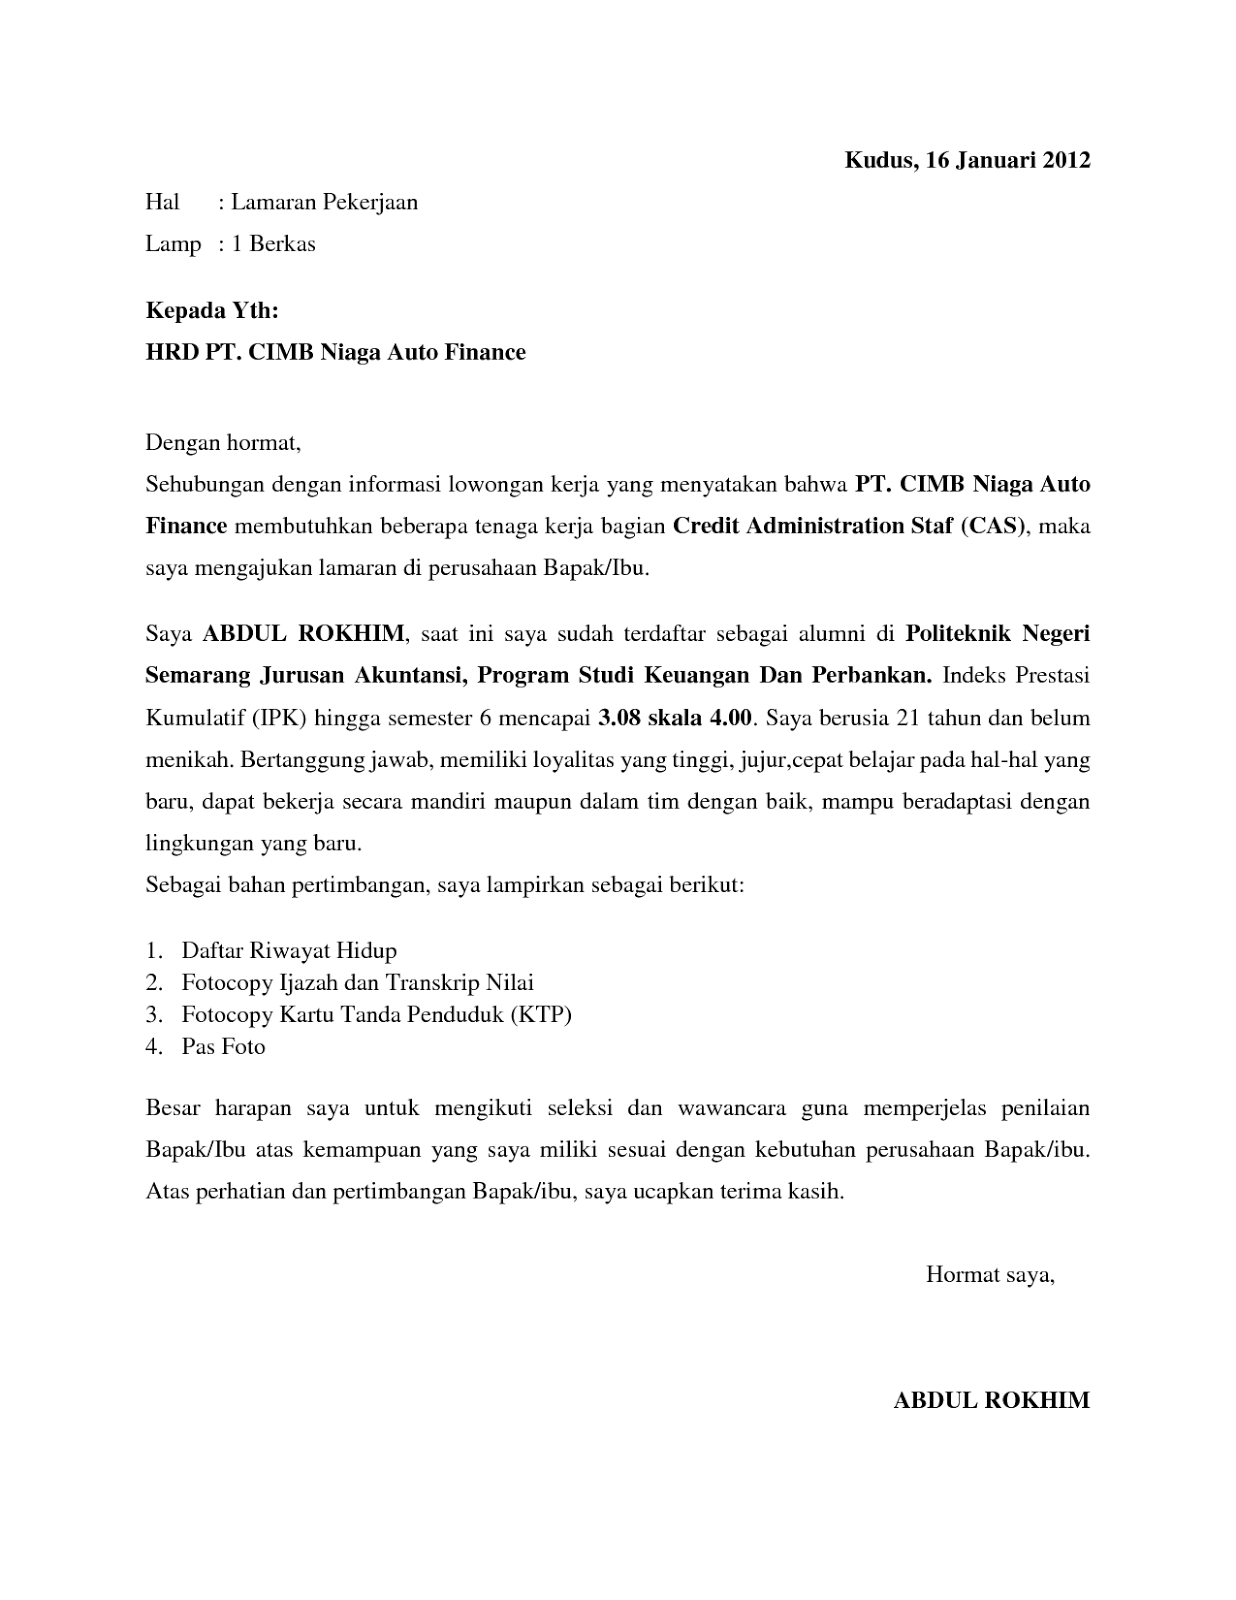 Cv Lamaran Kerja Pdf To Word Pdf Download Pdf Archive